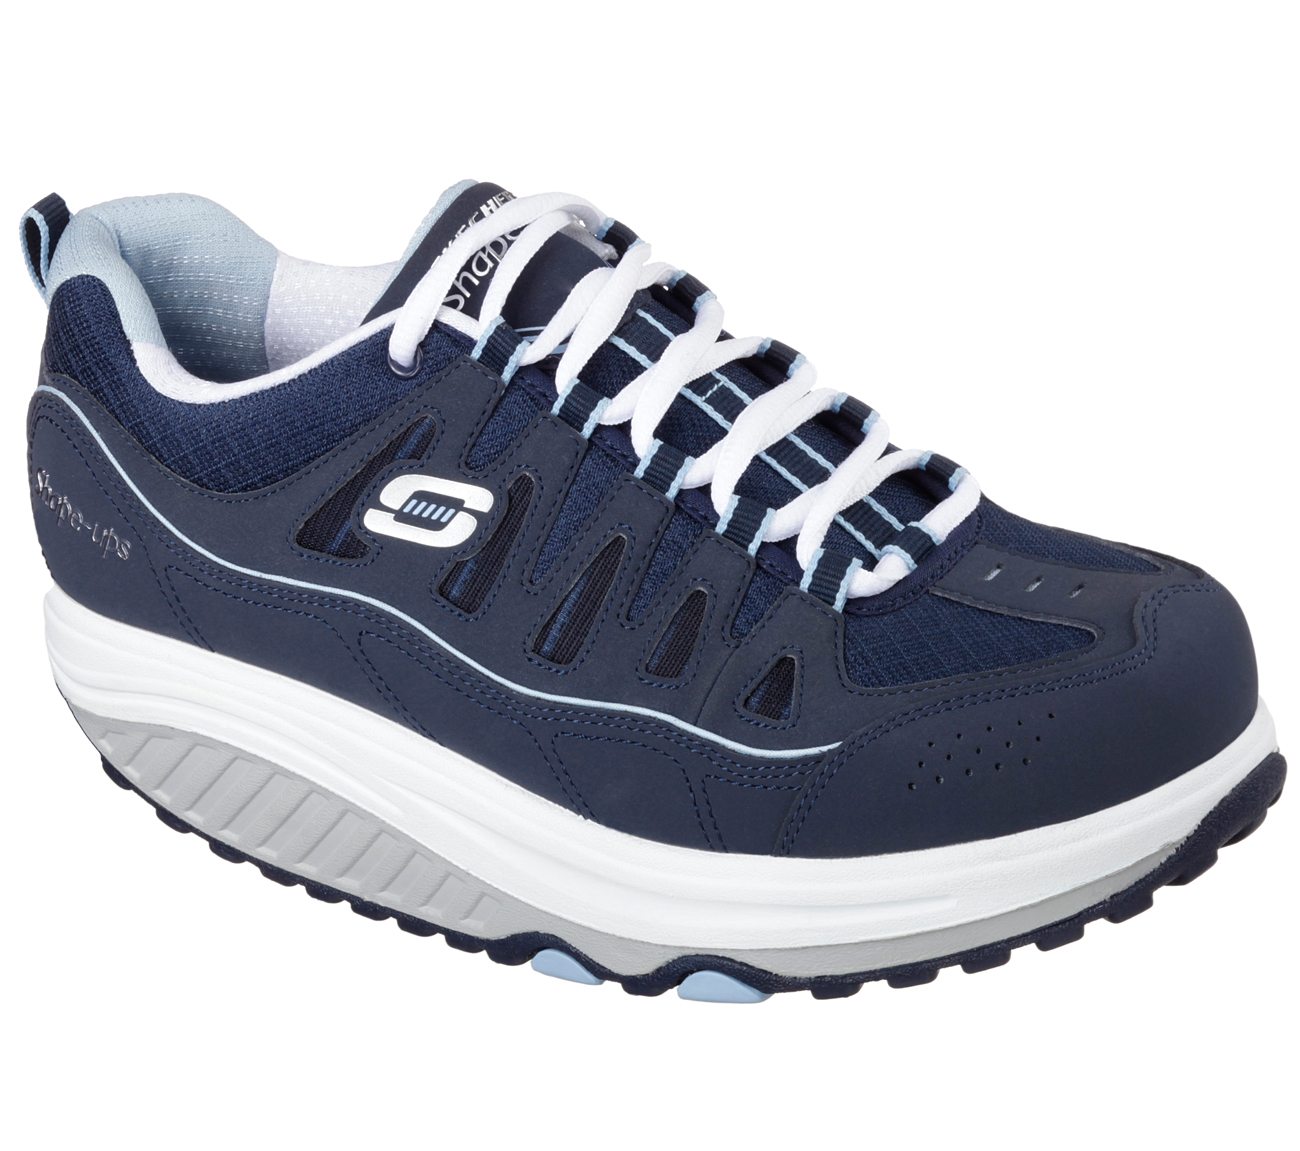 Skechers rocker bottom en kohls